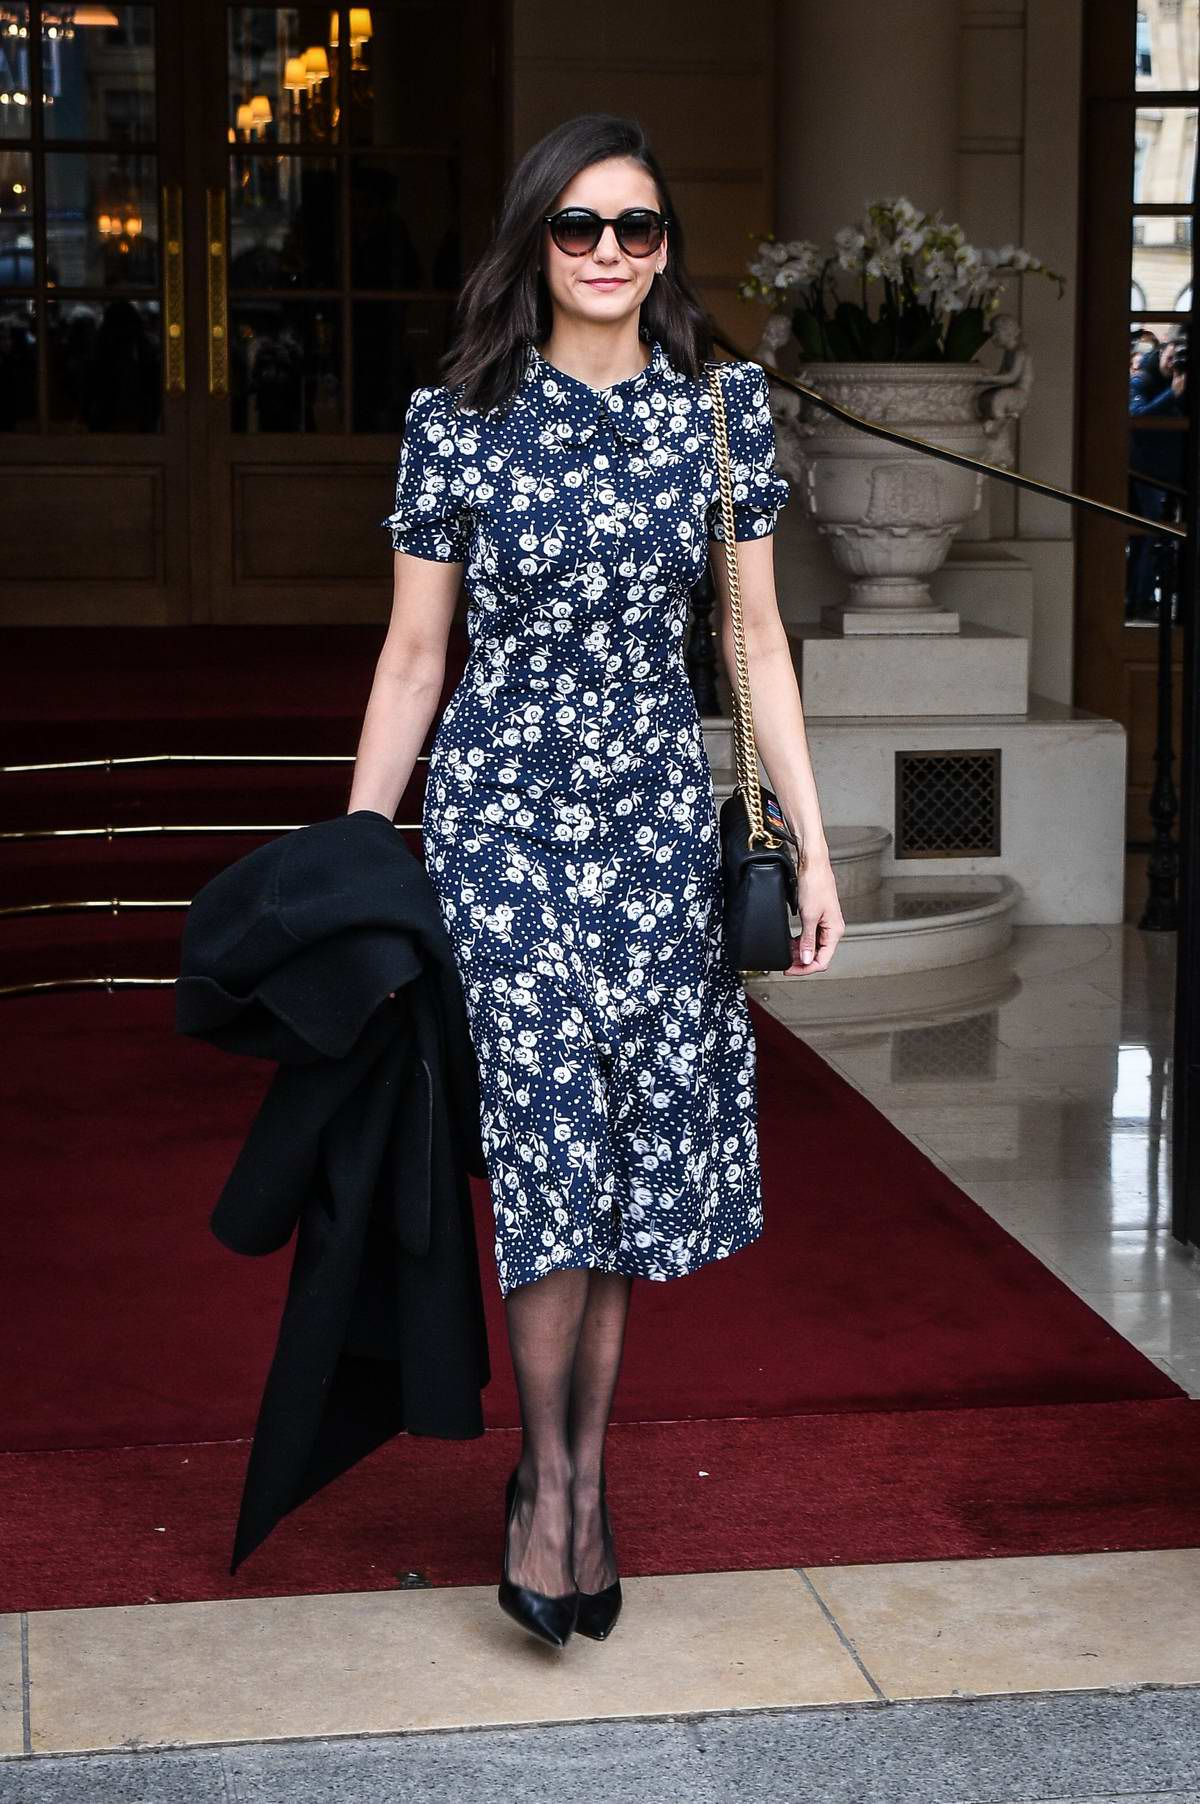 Nina Dobrev steps out in a navy blue floral print dress during Paris Fashion Week F/W 2019 in Paris, France